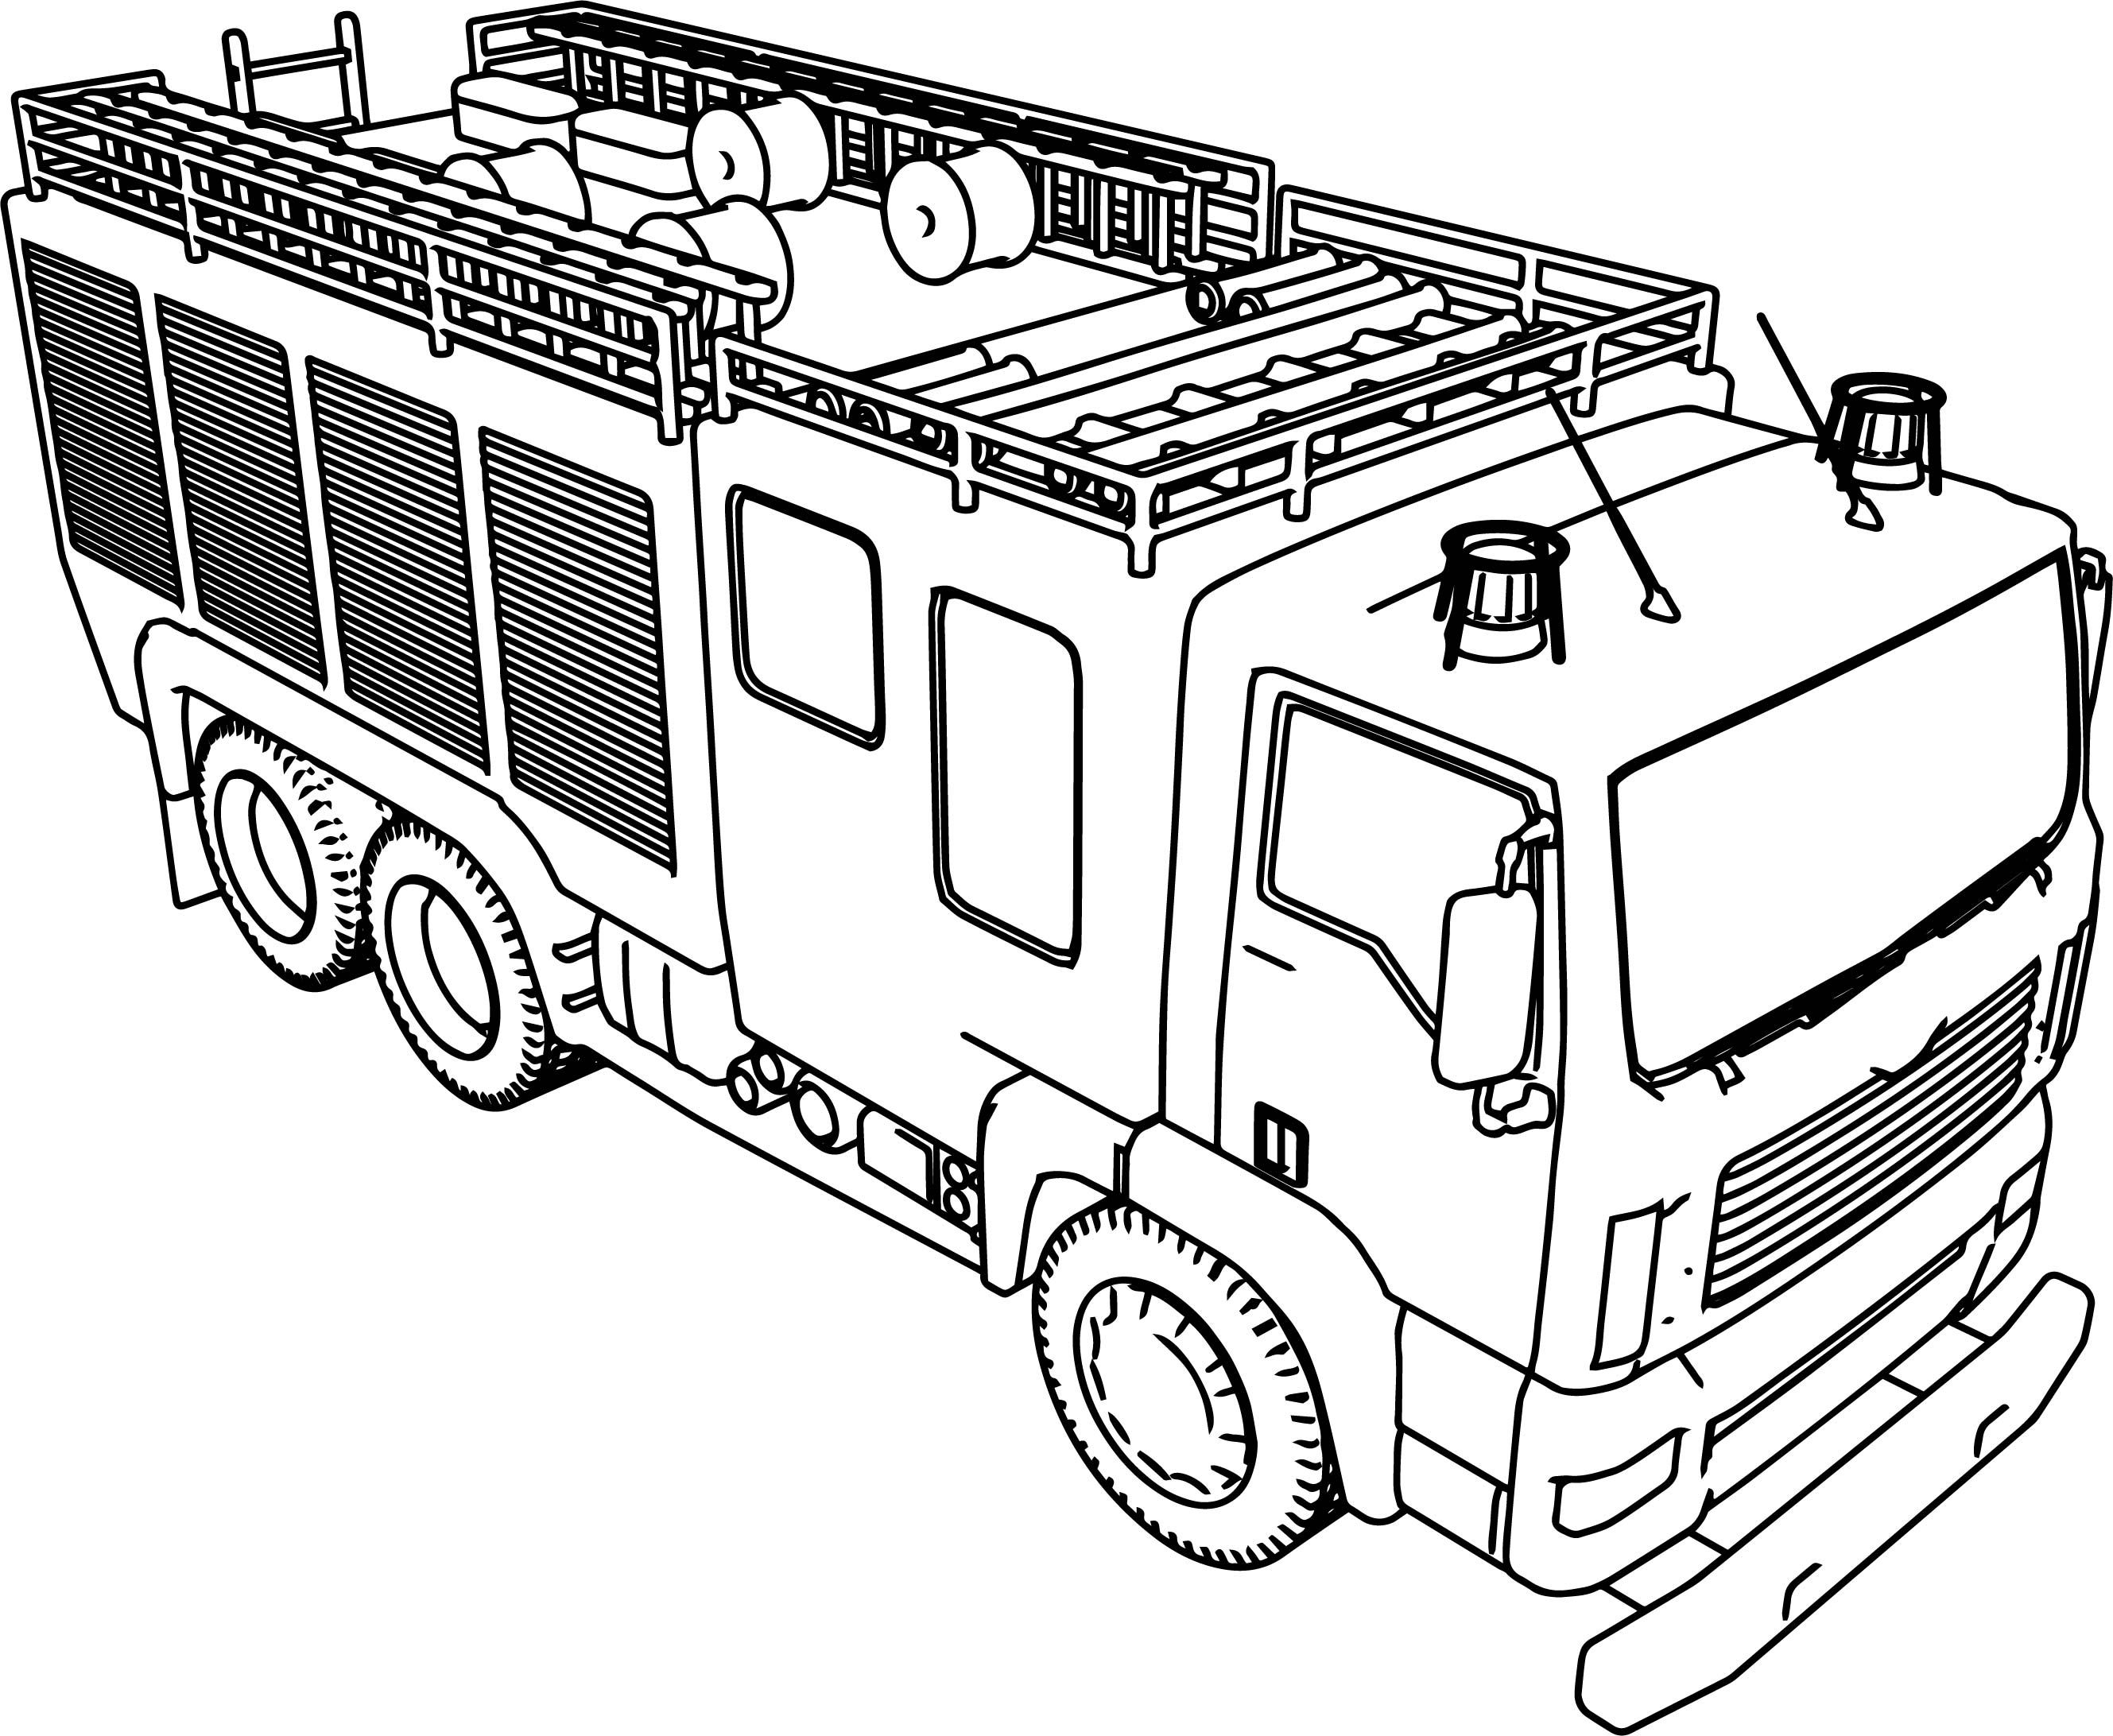 Awesome Big Fire Truck Coloring Page With Images